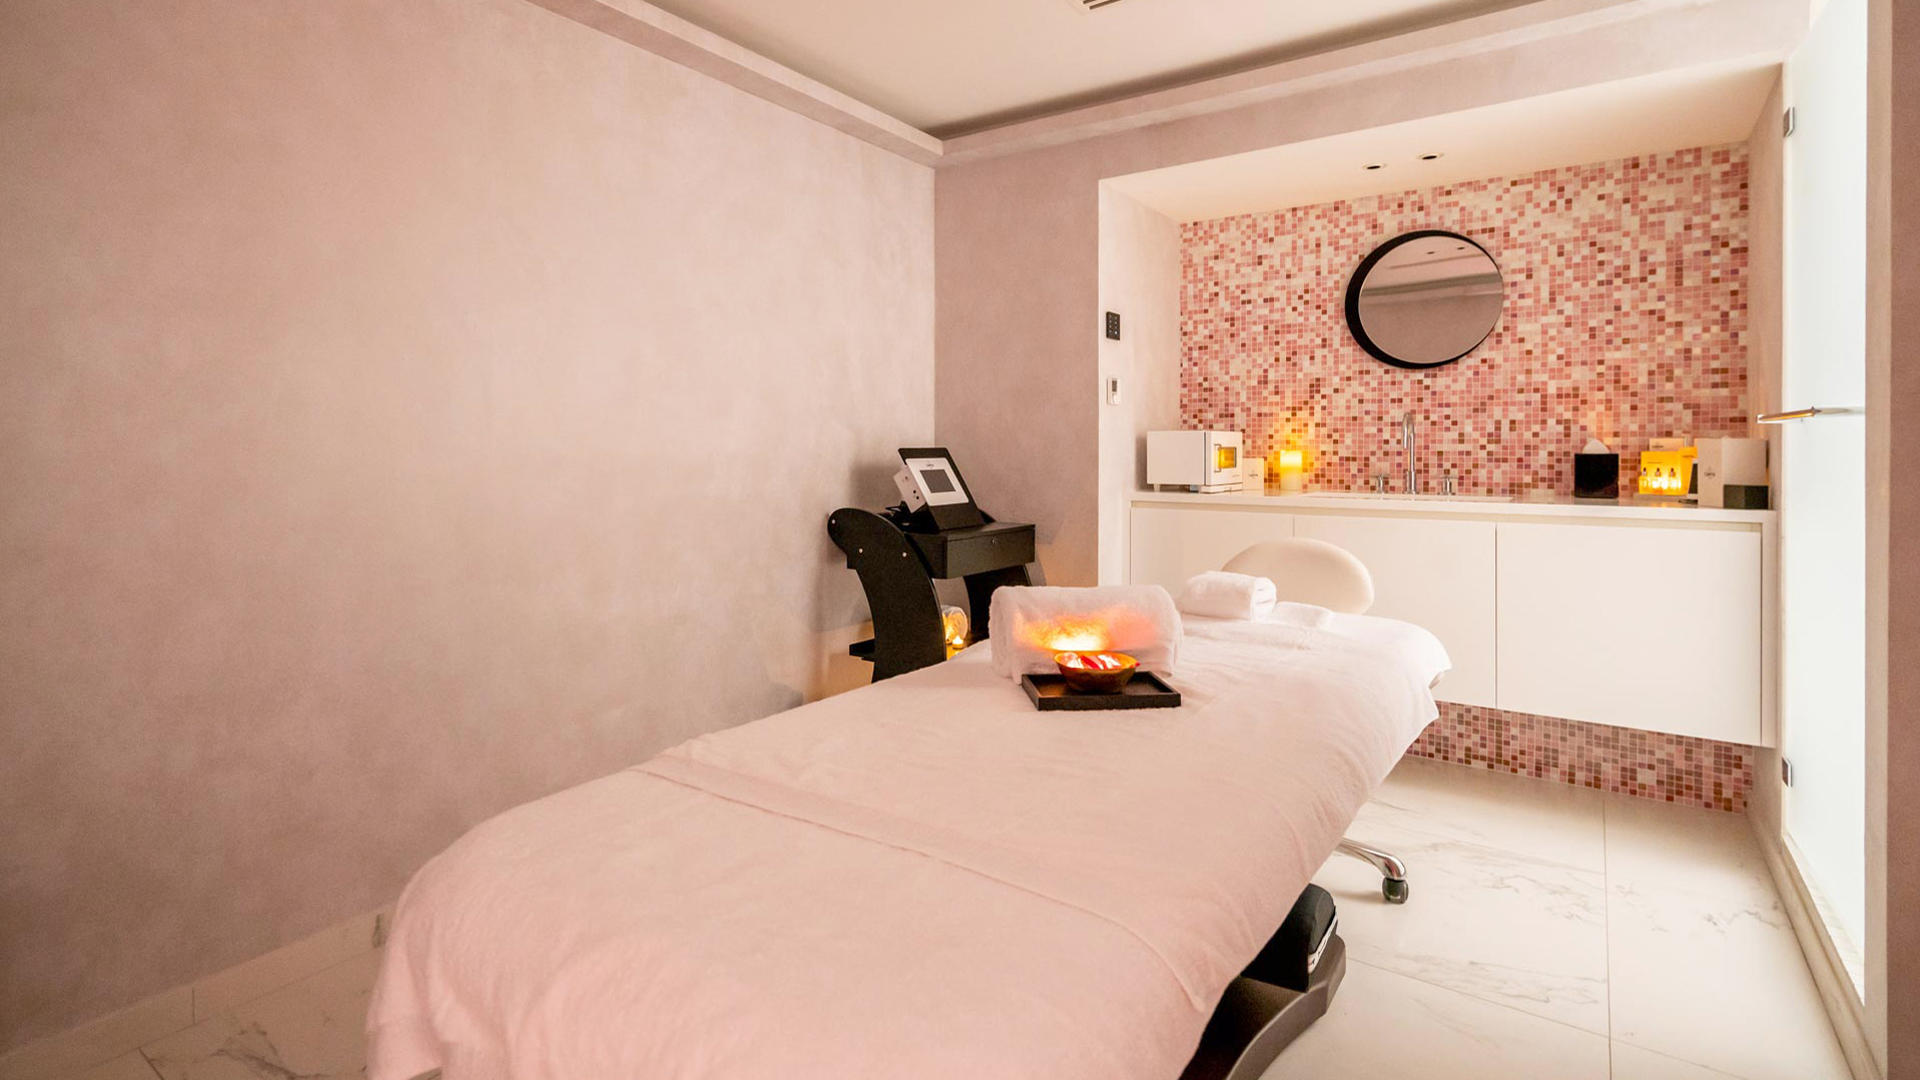 Fauchon_Hotel_Paris_Spa_4